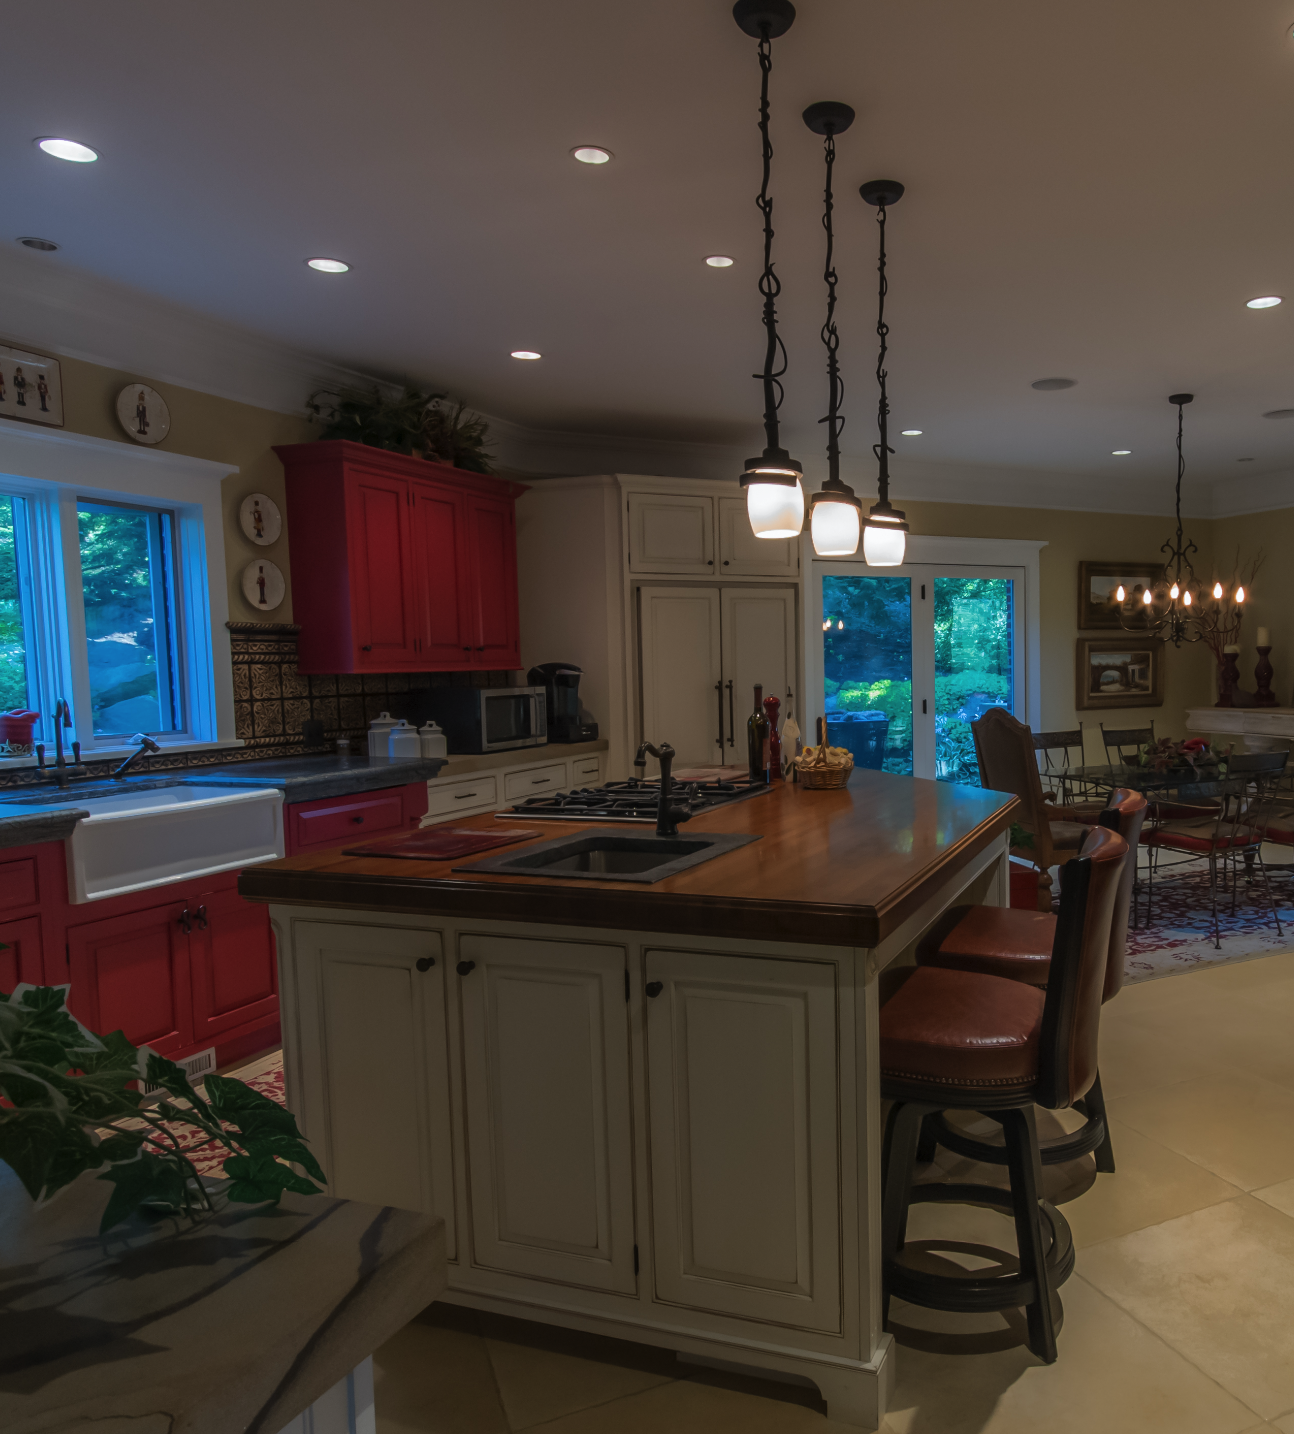 Kitchen Remodel by Blackwood & Associates with offices in Mars, PA and Canonsburg, PA.